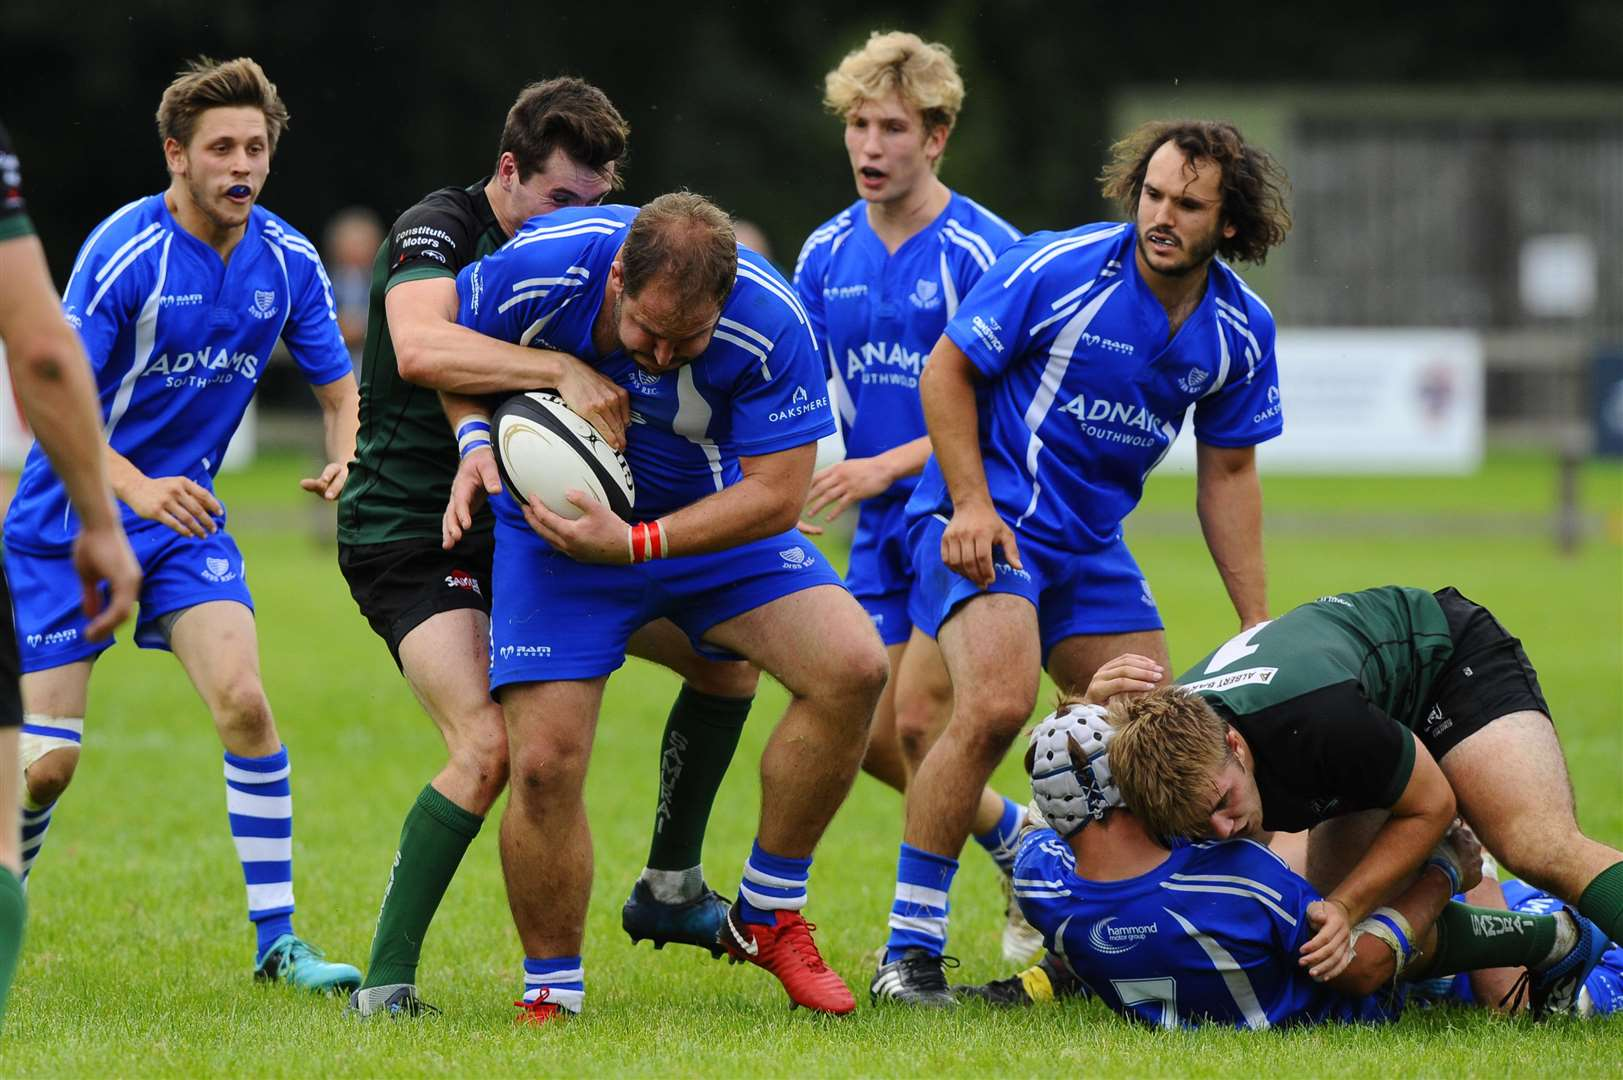 Roydon, Norfolk. 08 September 2018 ..Rugby action from Diss RFC v North Walsham - Chris Beard...Picture by Mark Bullimore Photography. (4048340)